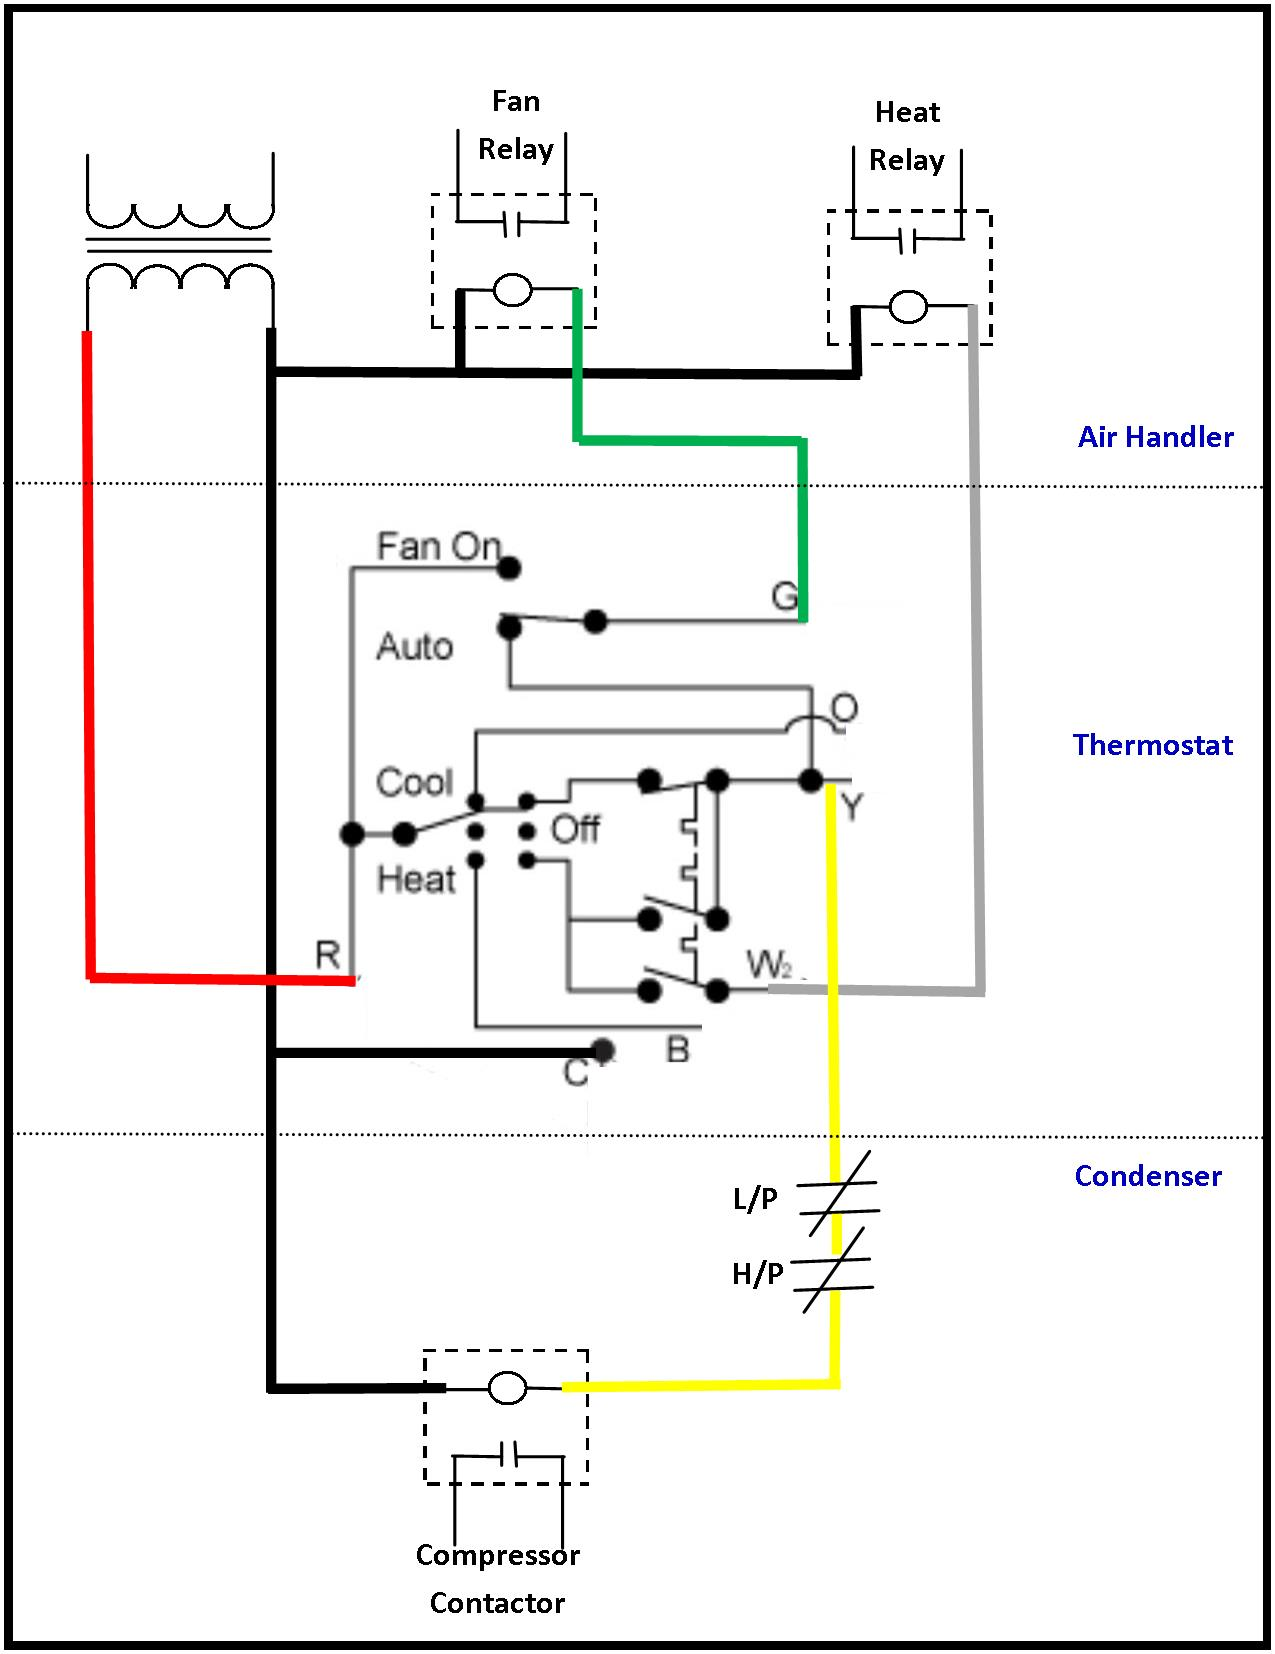 Ac Switch Wiring Diagram Great Design Of Generator Voltage Get Free Image About Safety For Furnace Transfer Vintage Air Trinary